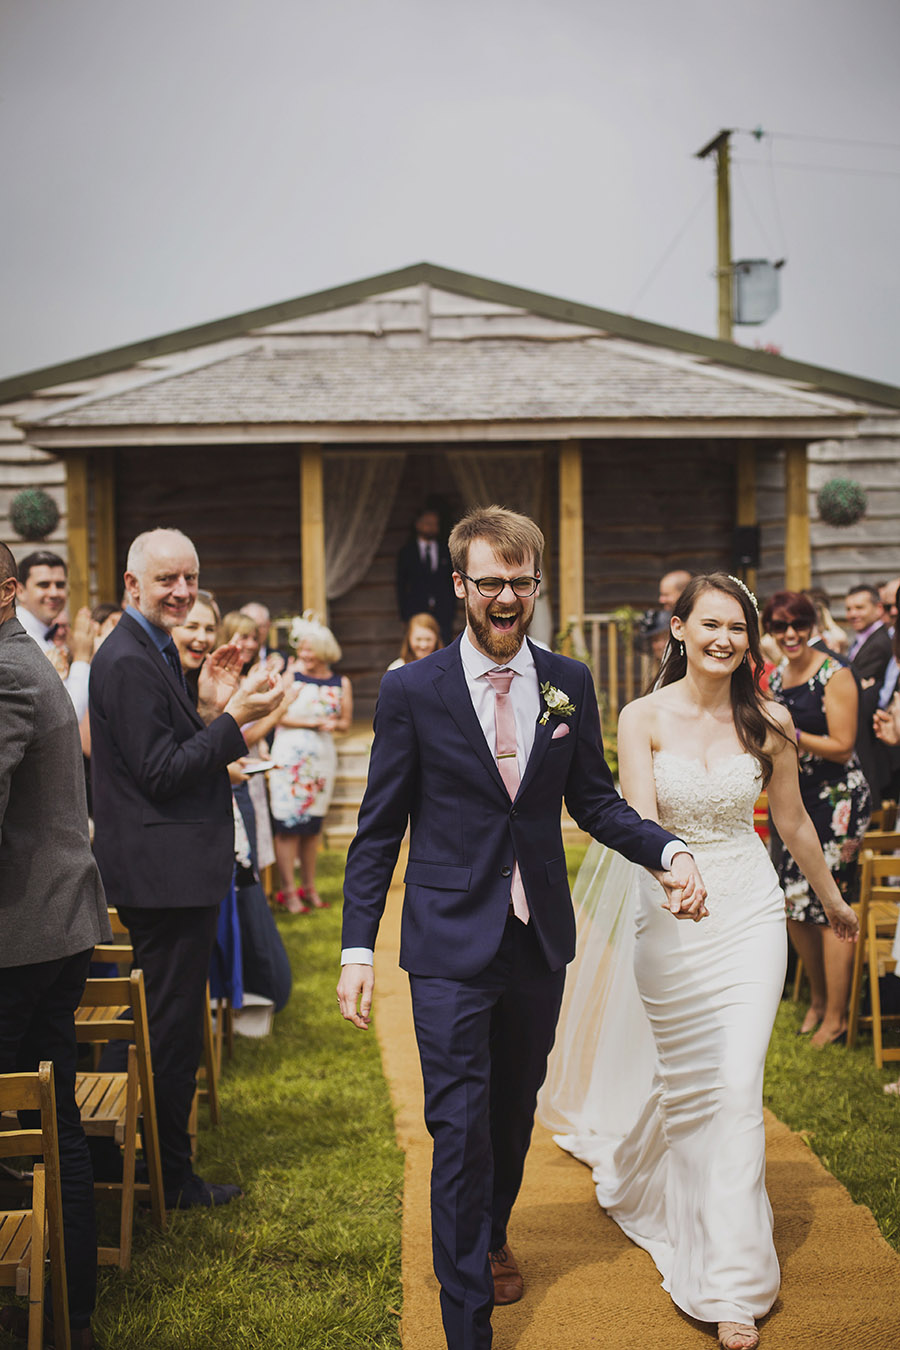 Relaxed outdoor wedding at Cott Farm Barn with images by Heather Birnie Photography on the English Wedding Blog (24)